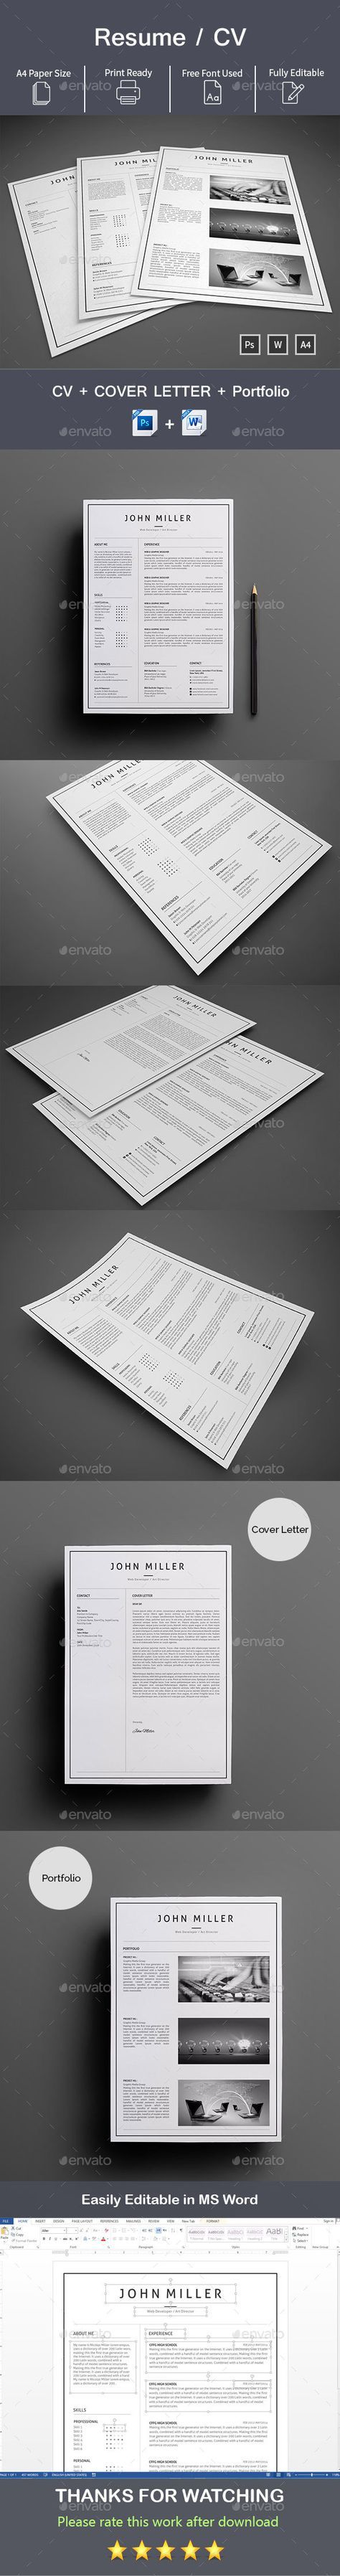 Employee Application Template%0A management proposal template